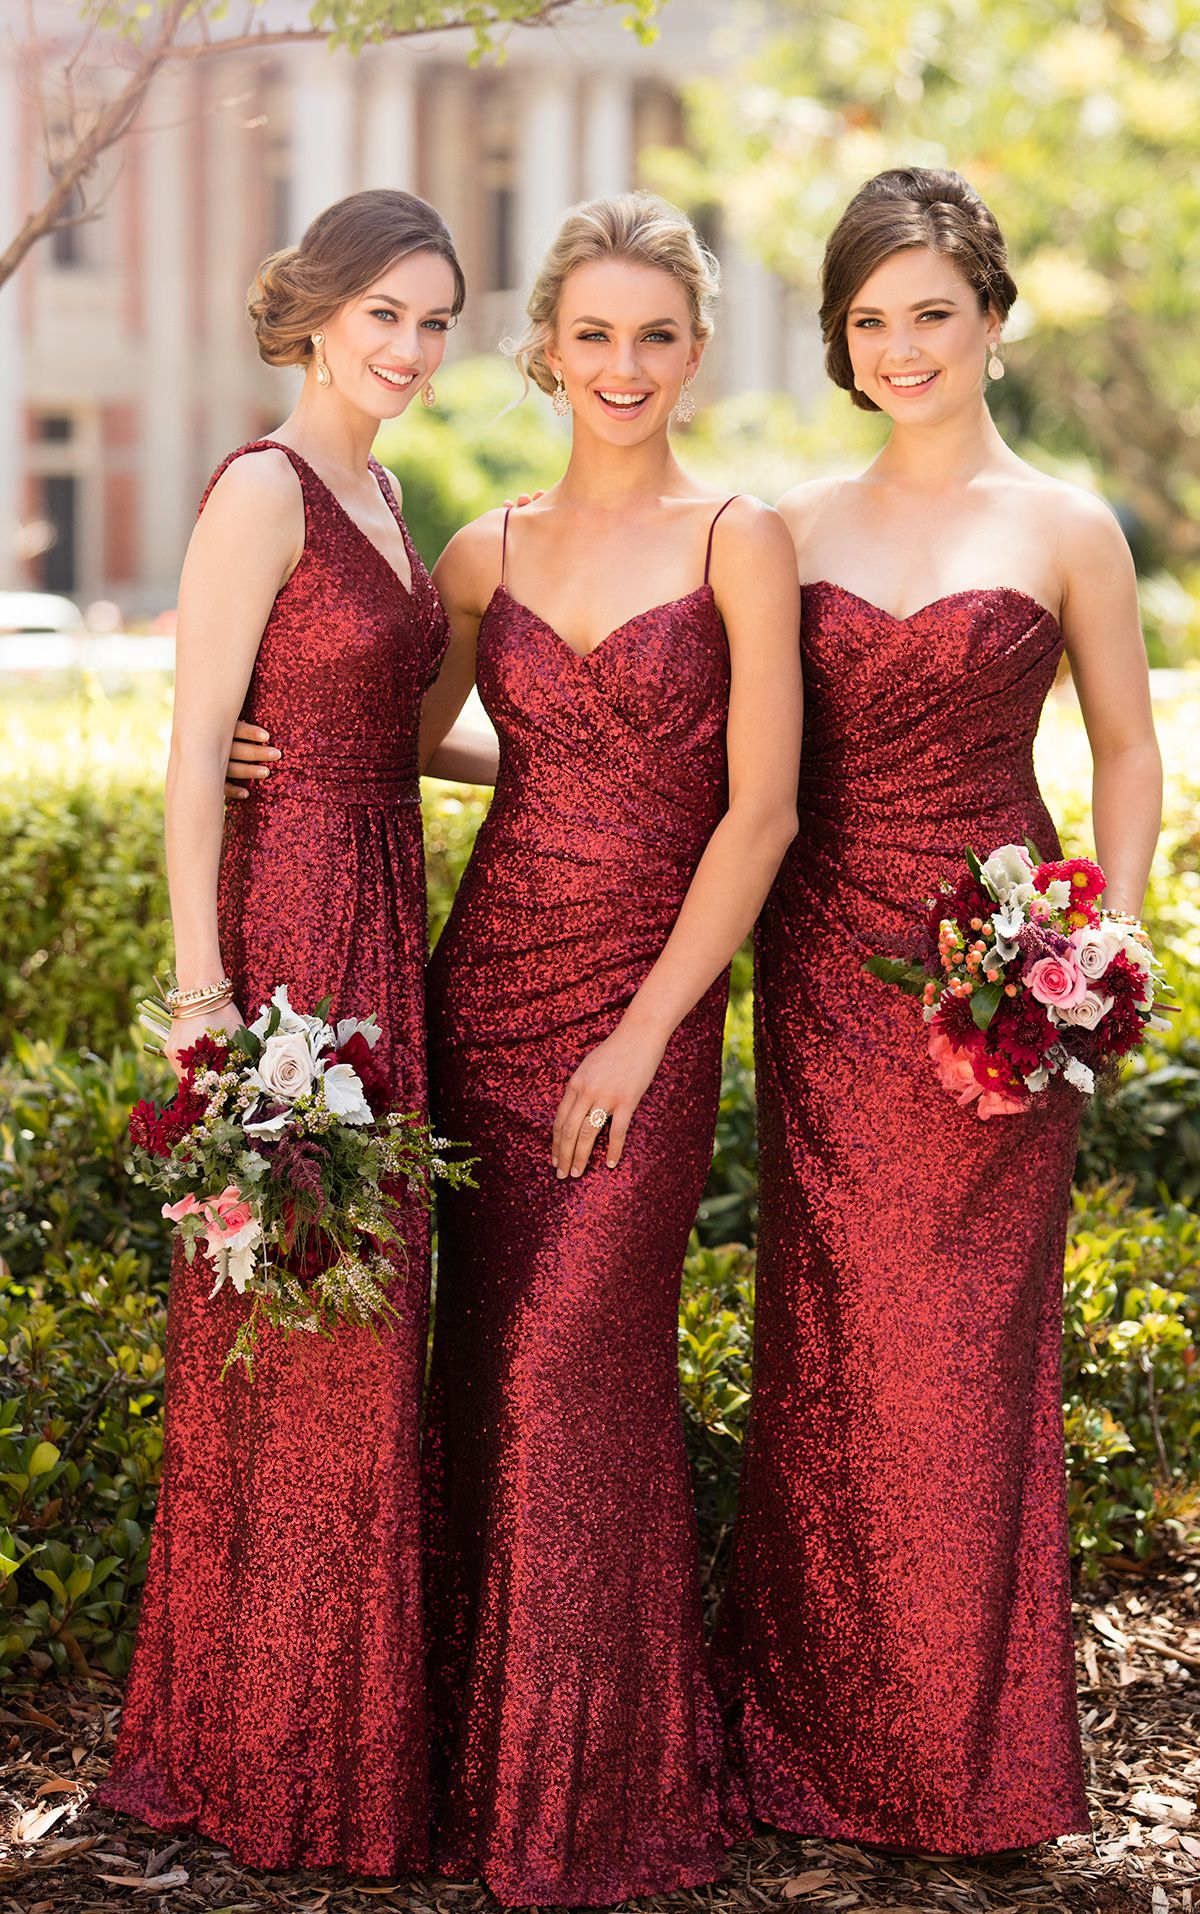 Cranberry sequins bridesmaids dresses from sorella vita wedding cranberry sequins bridesmaids dresses from sorella vita ombrellifo Gallery